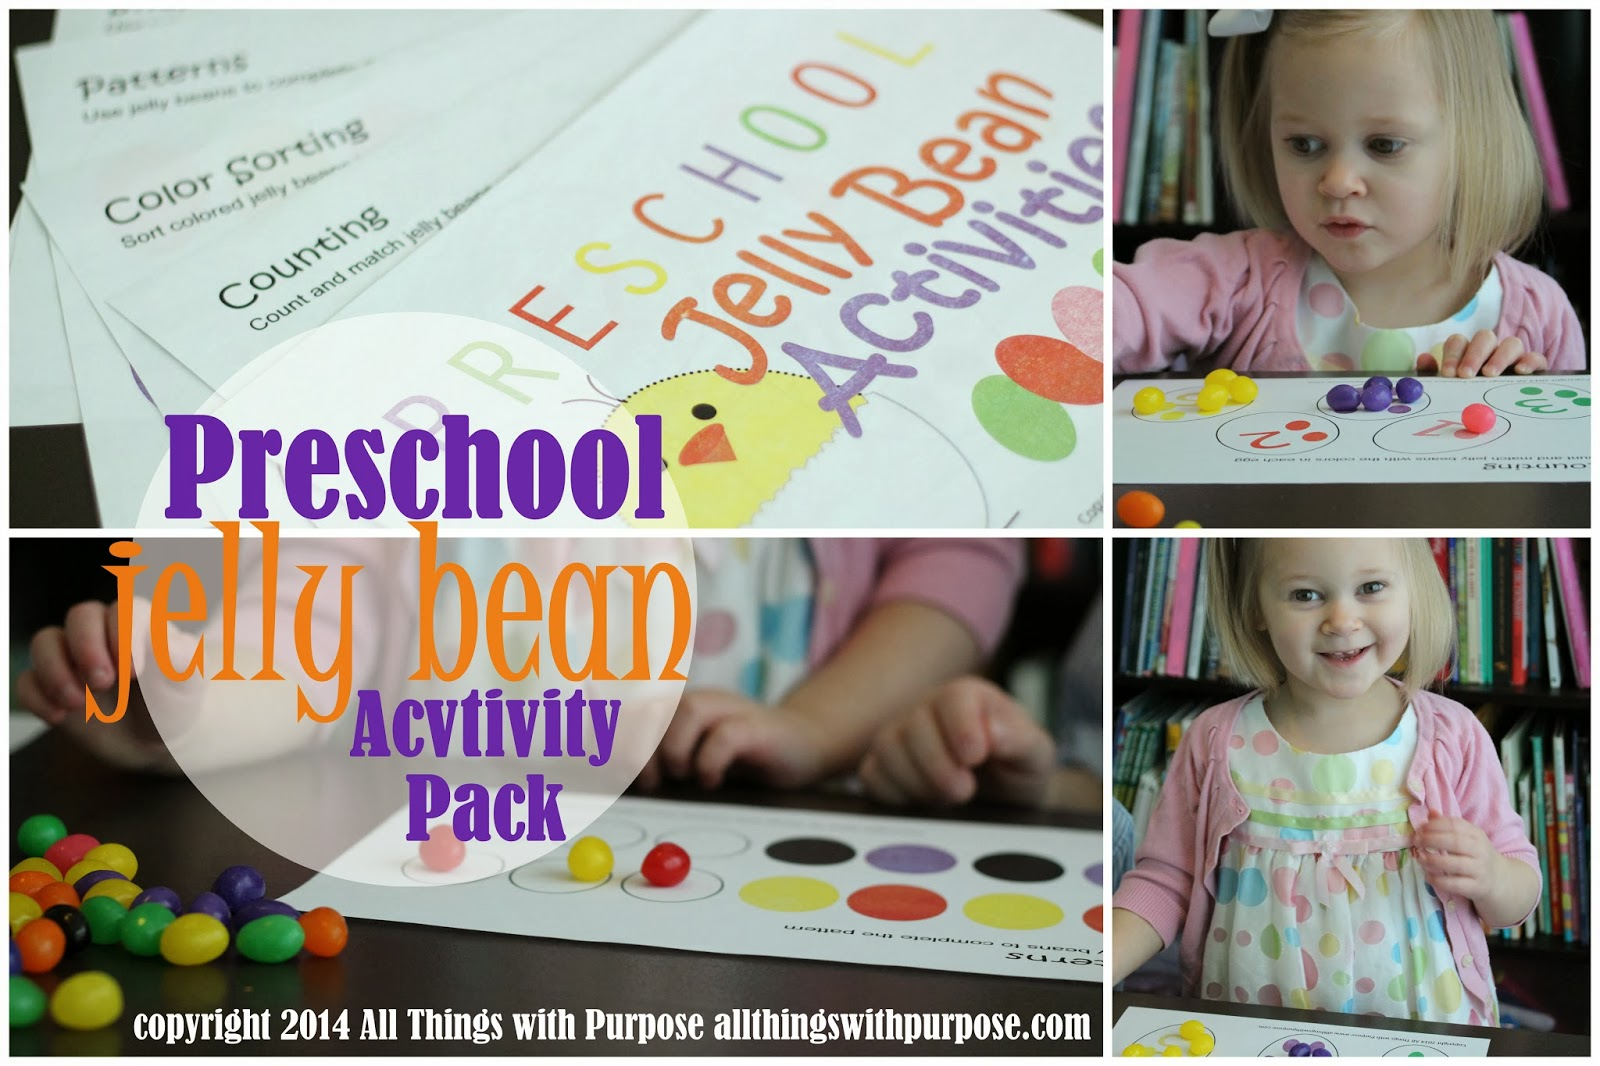 Jelly Bean Preschool Activity Pack